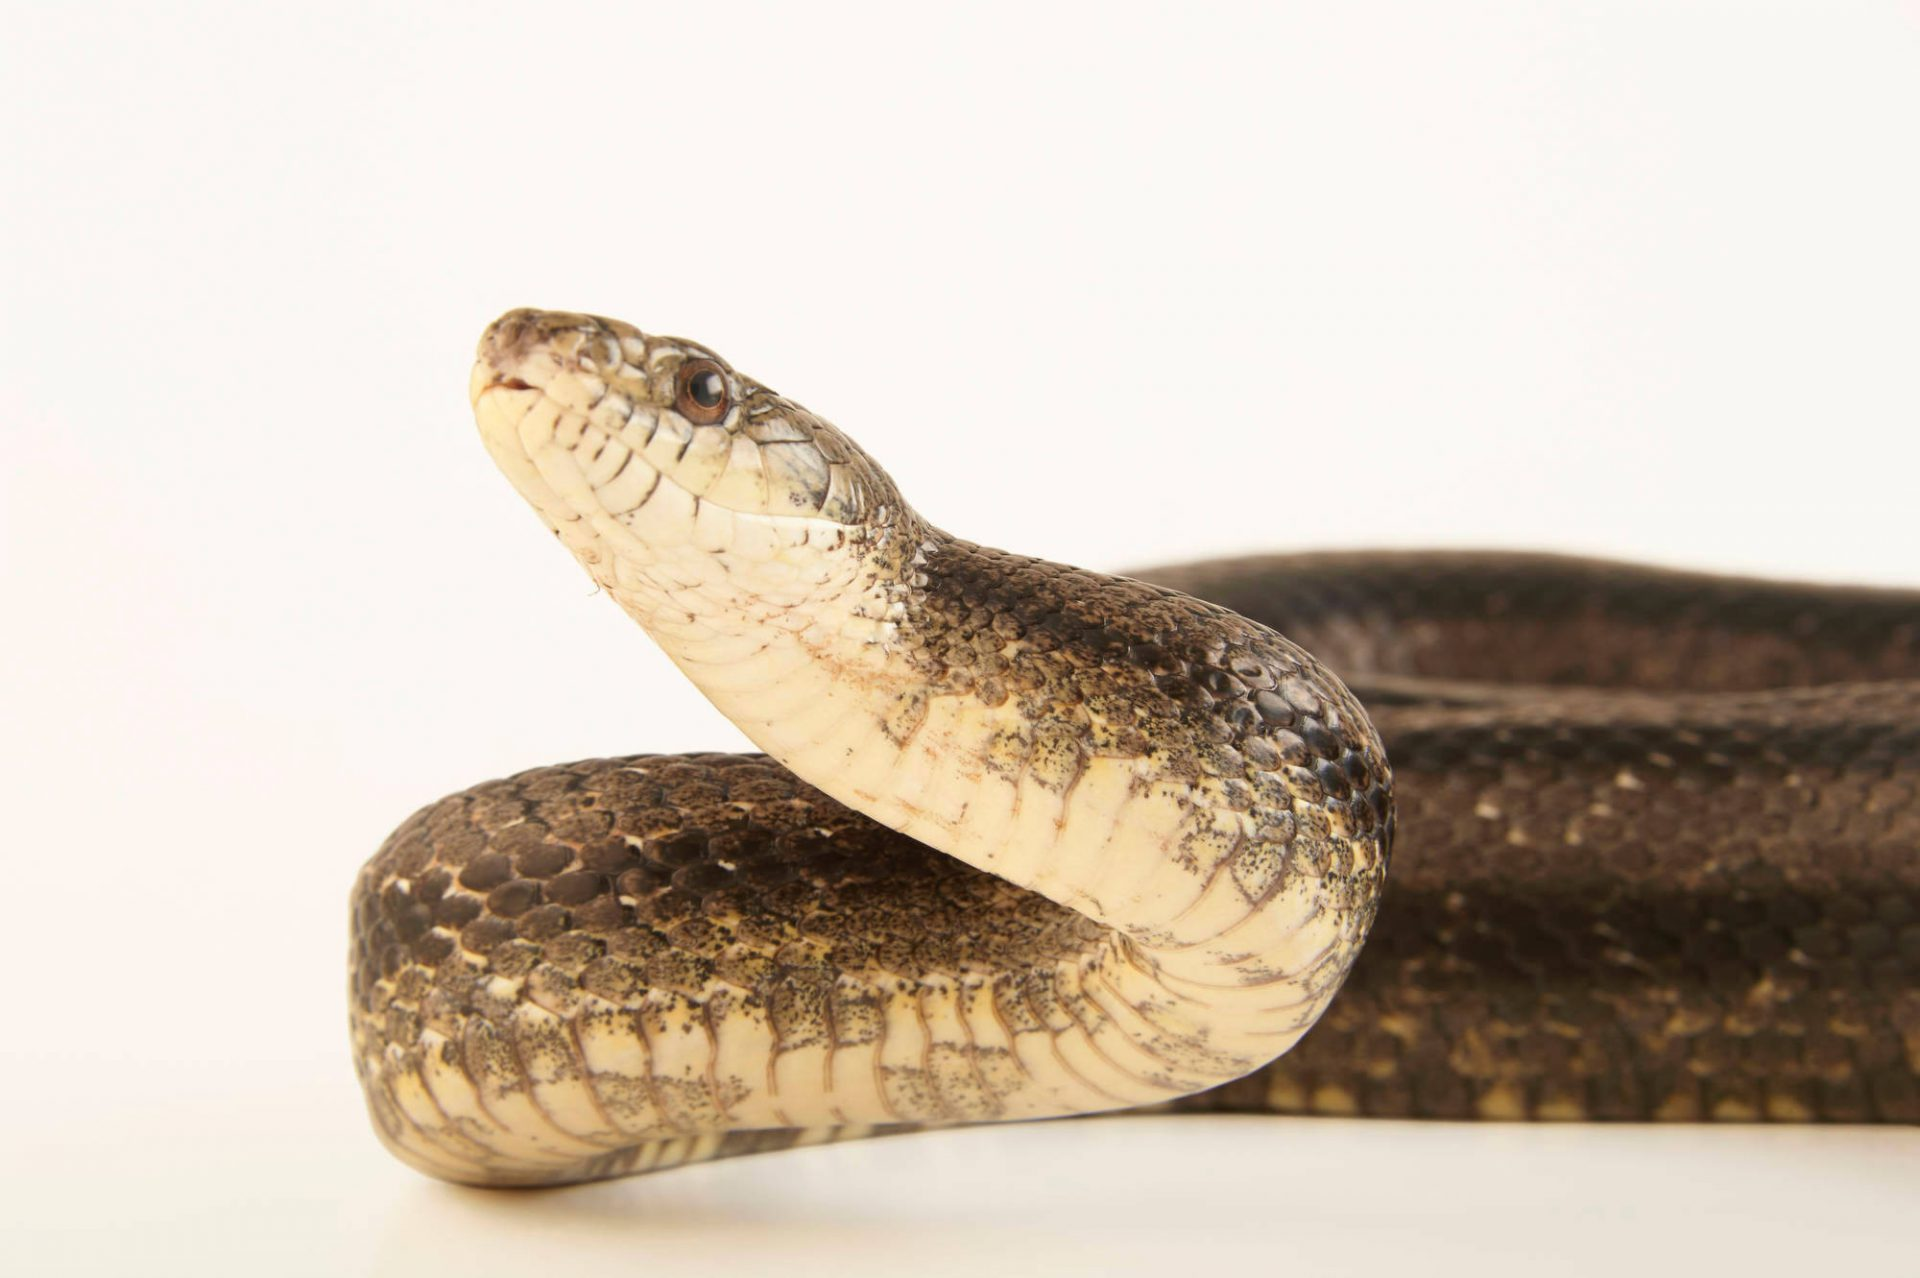 Picture of a western rat snake (Pantherophis obsoletus) at the Buttonwood Park Zoo in New Bedford, Massachusetts.